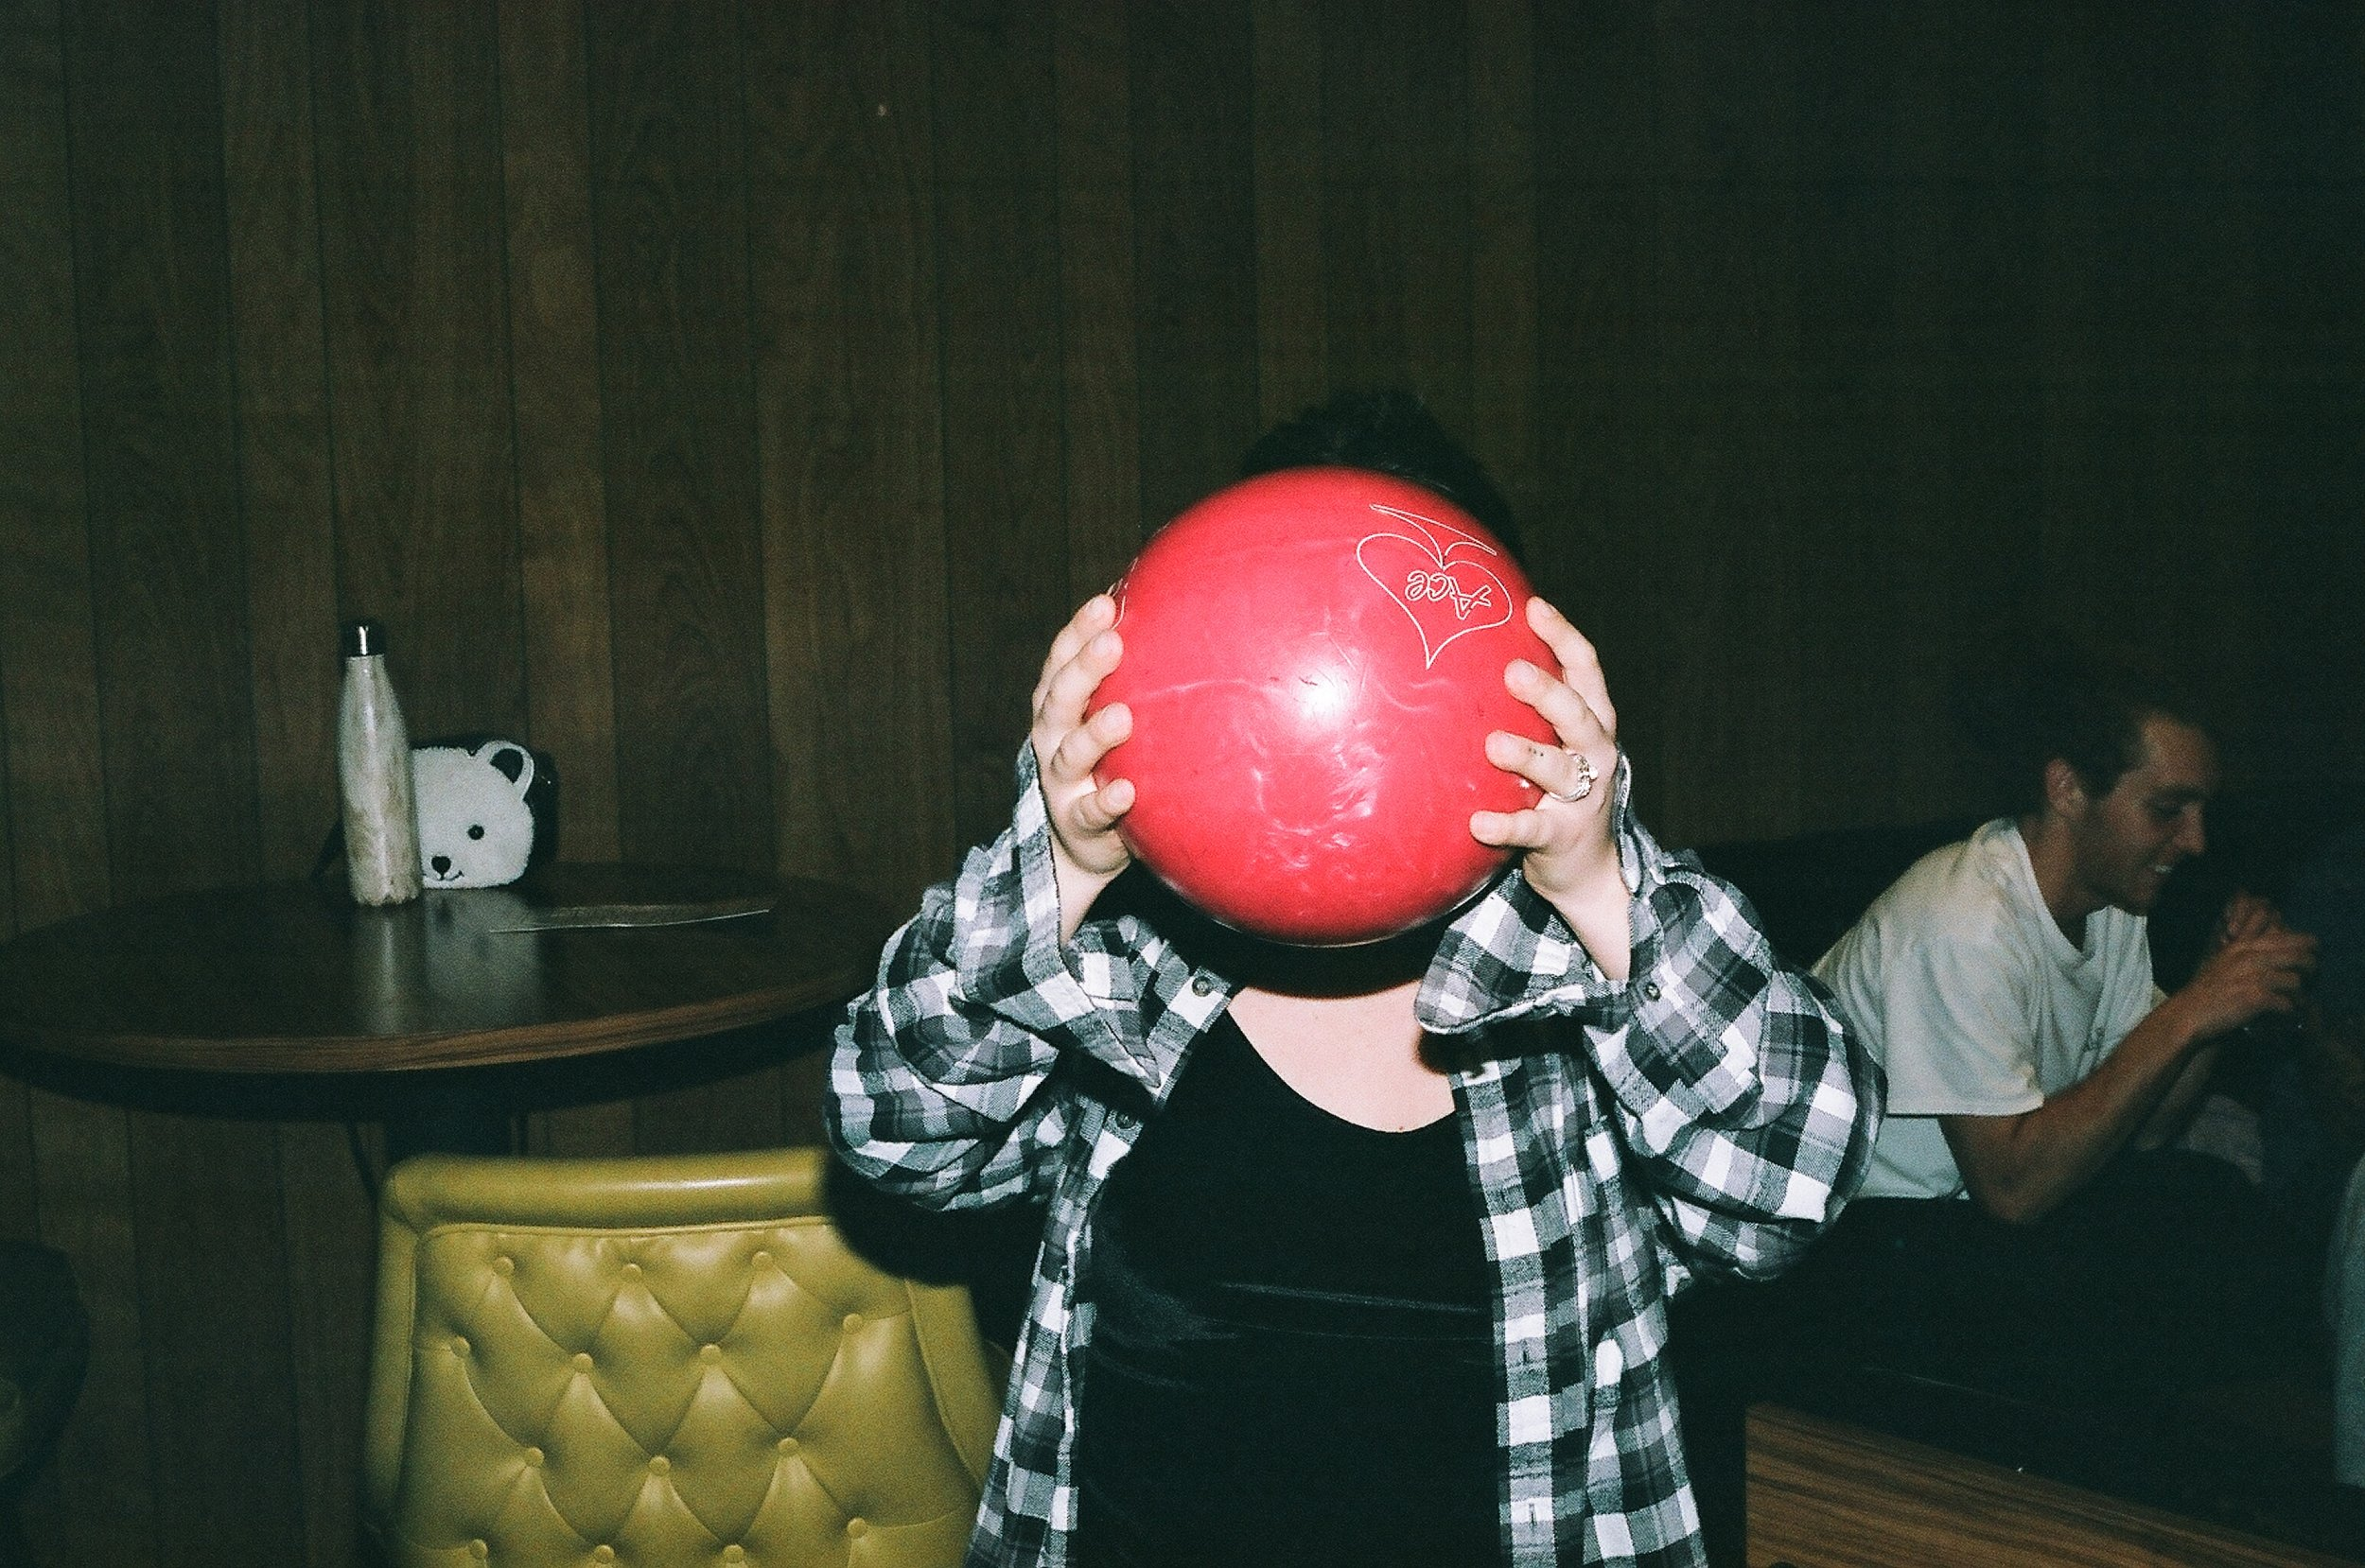 None of us were cool enough to bring a personal bowling ball, so we all played house ball.